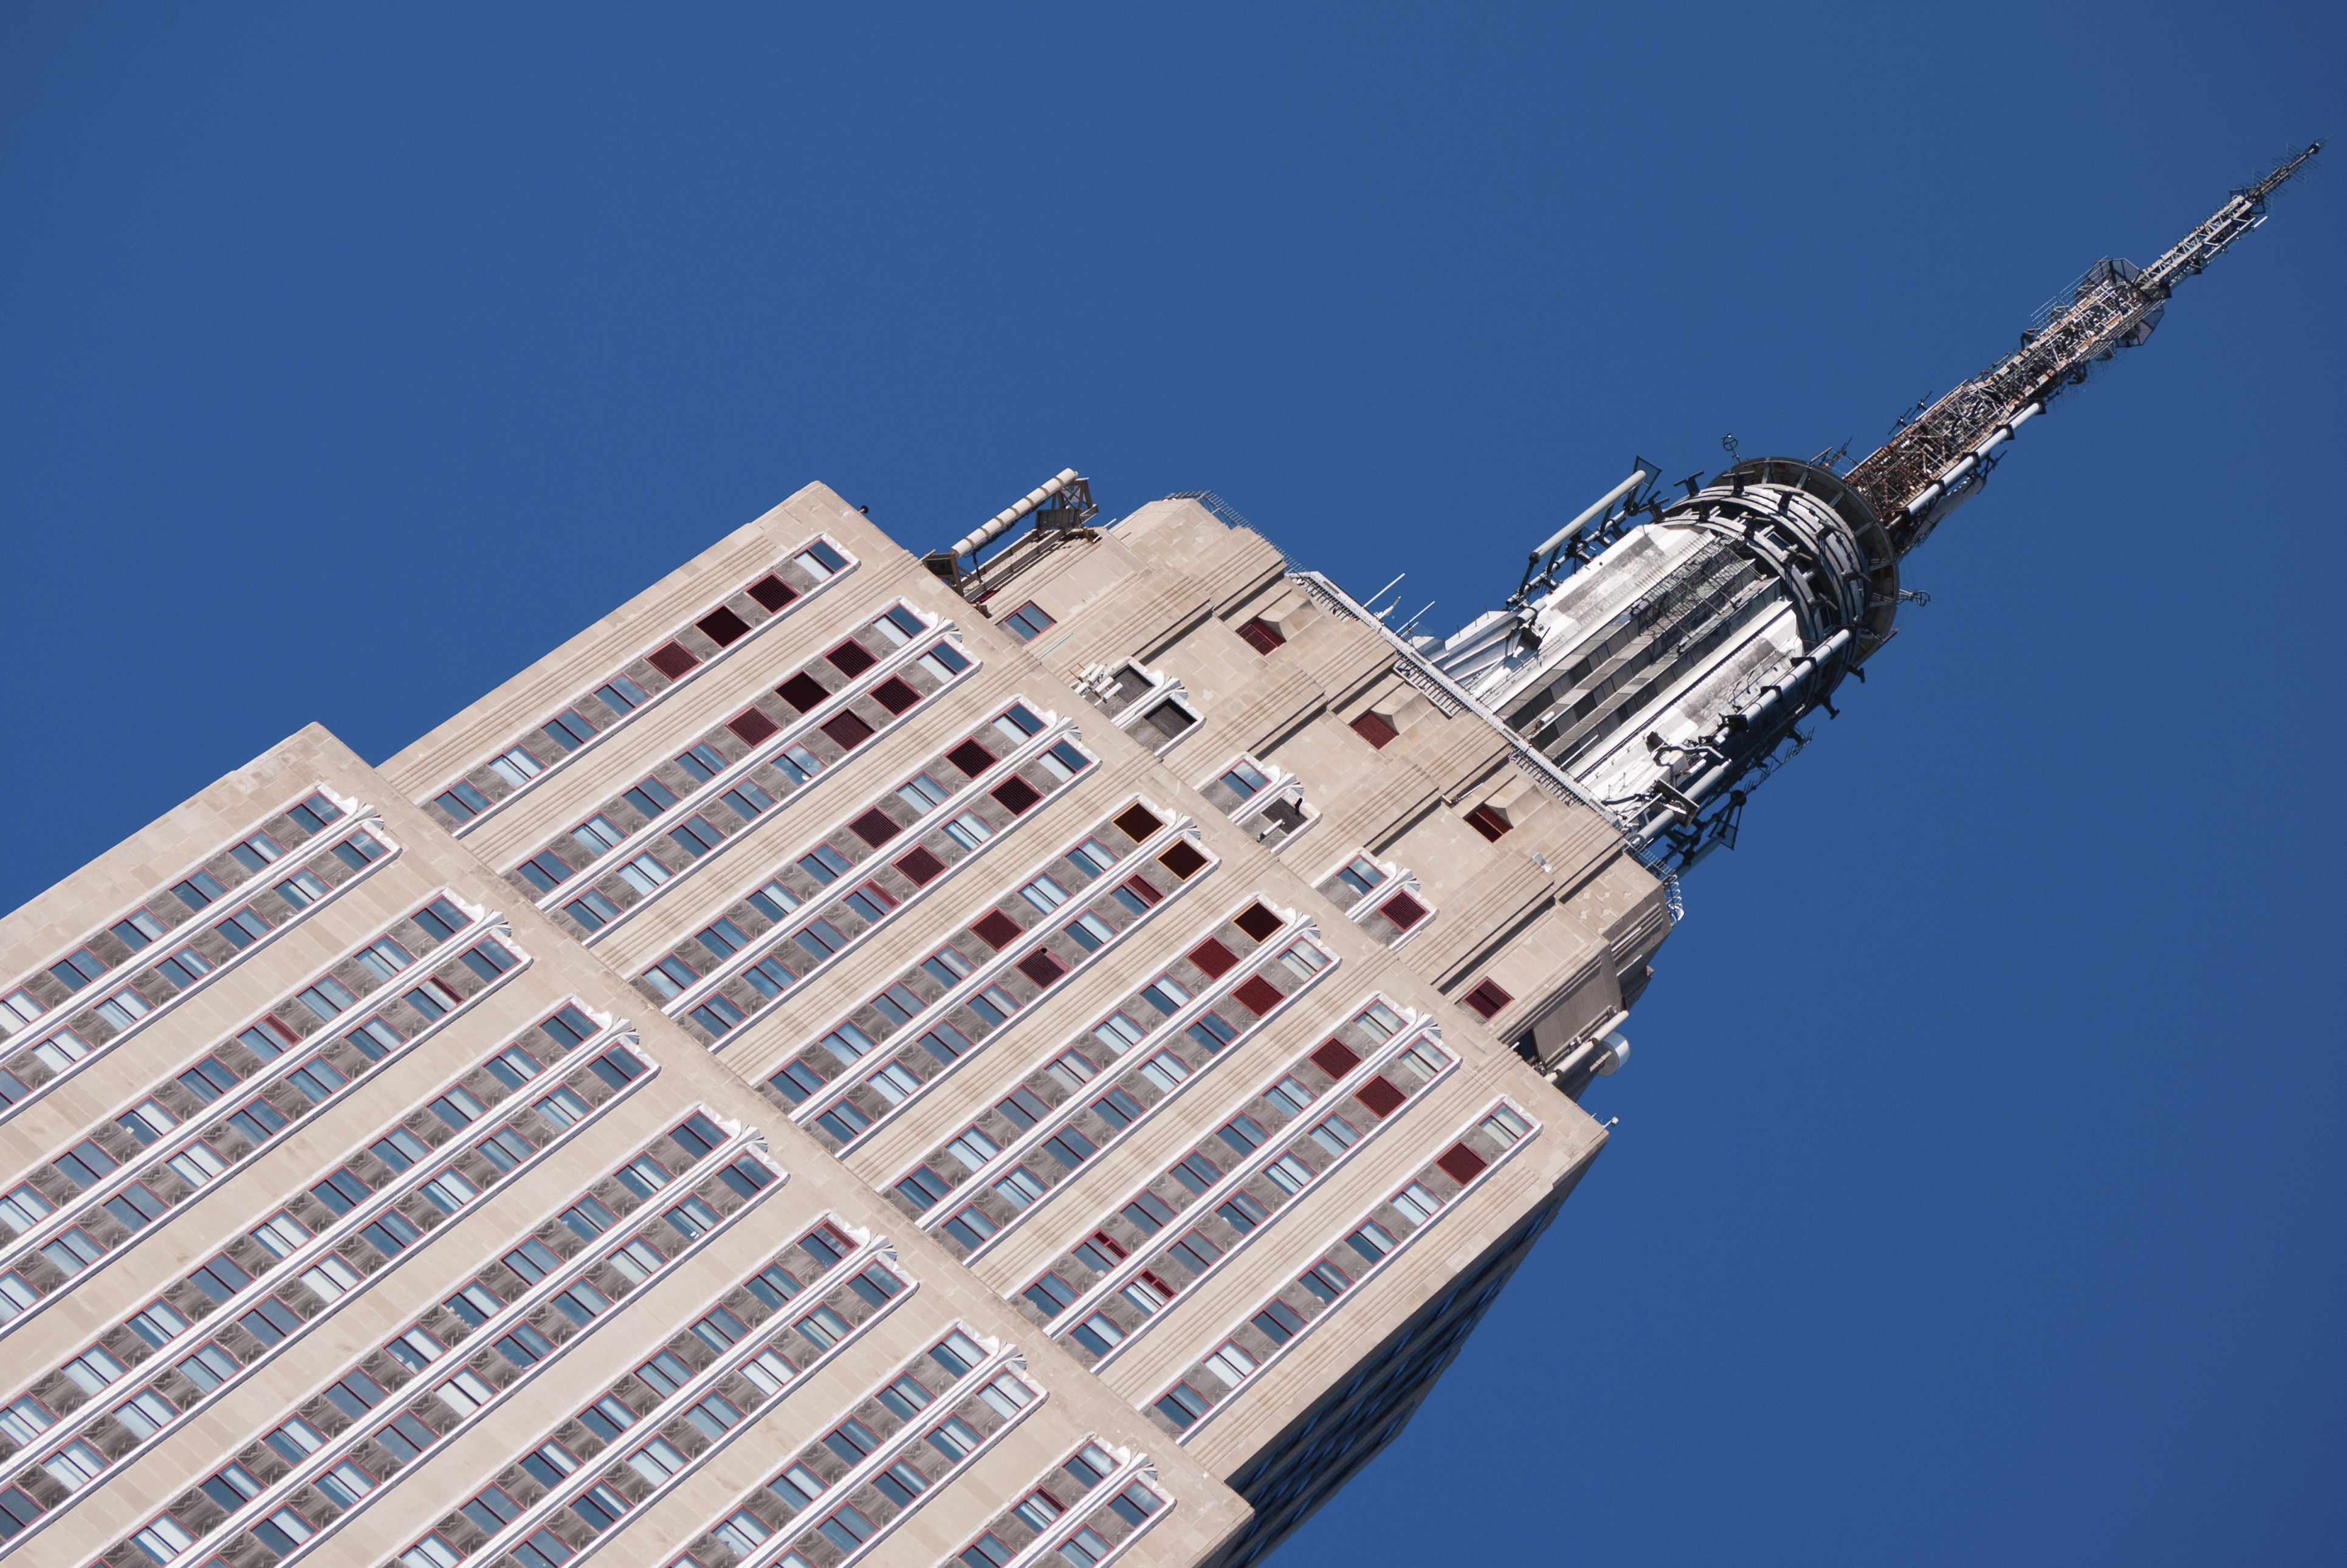 Close-up upper floors of the Art Deco Empire State Building in NYC